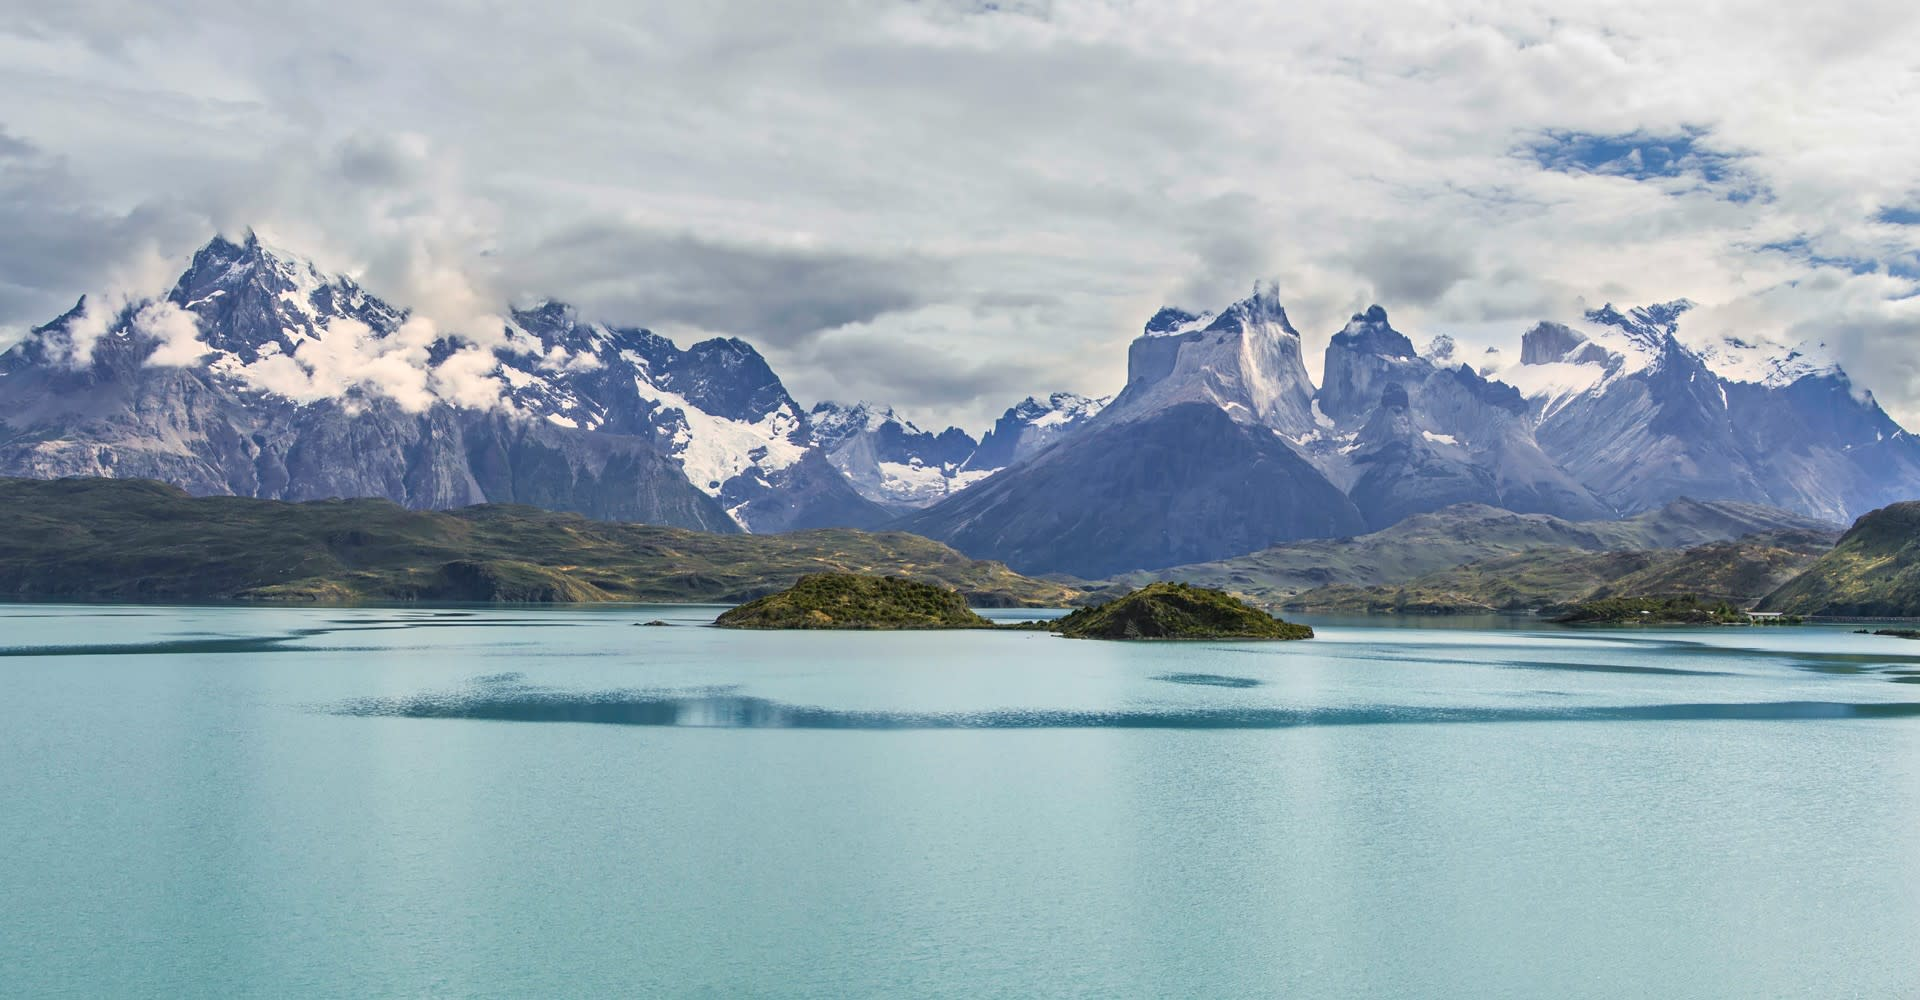 Mountains in Chile Patagonia Tour